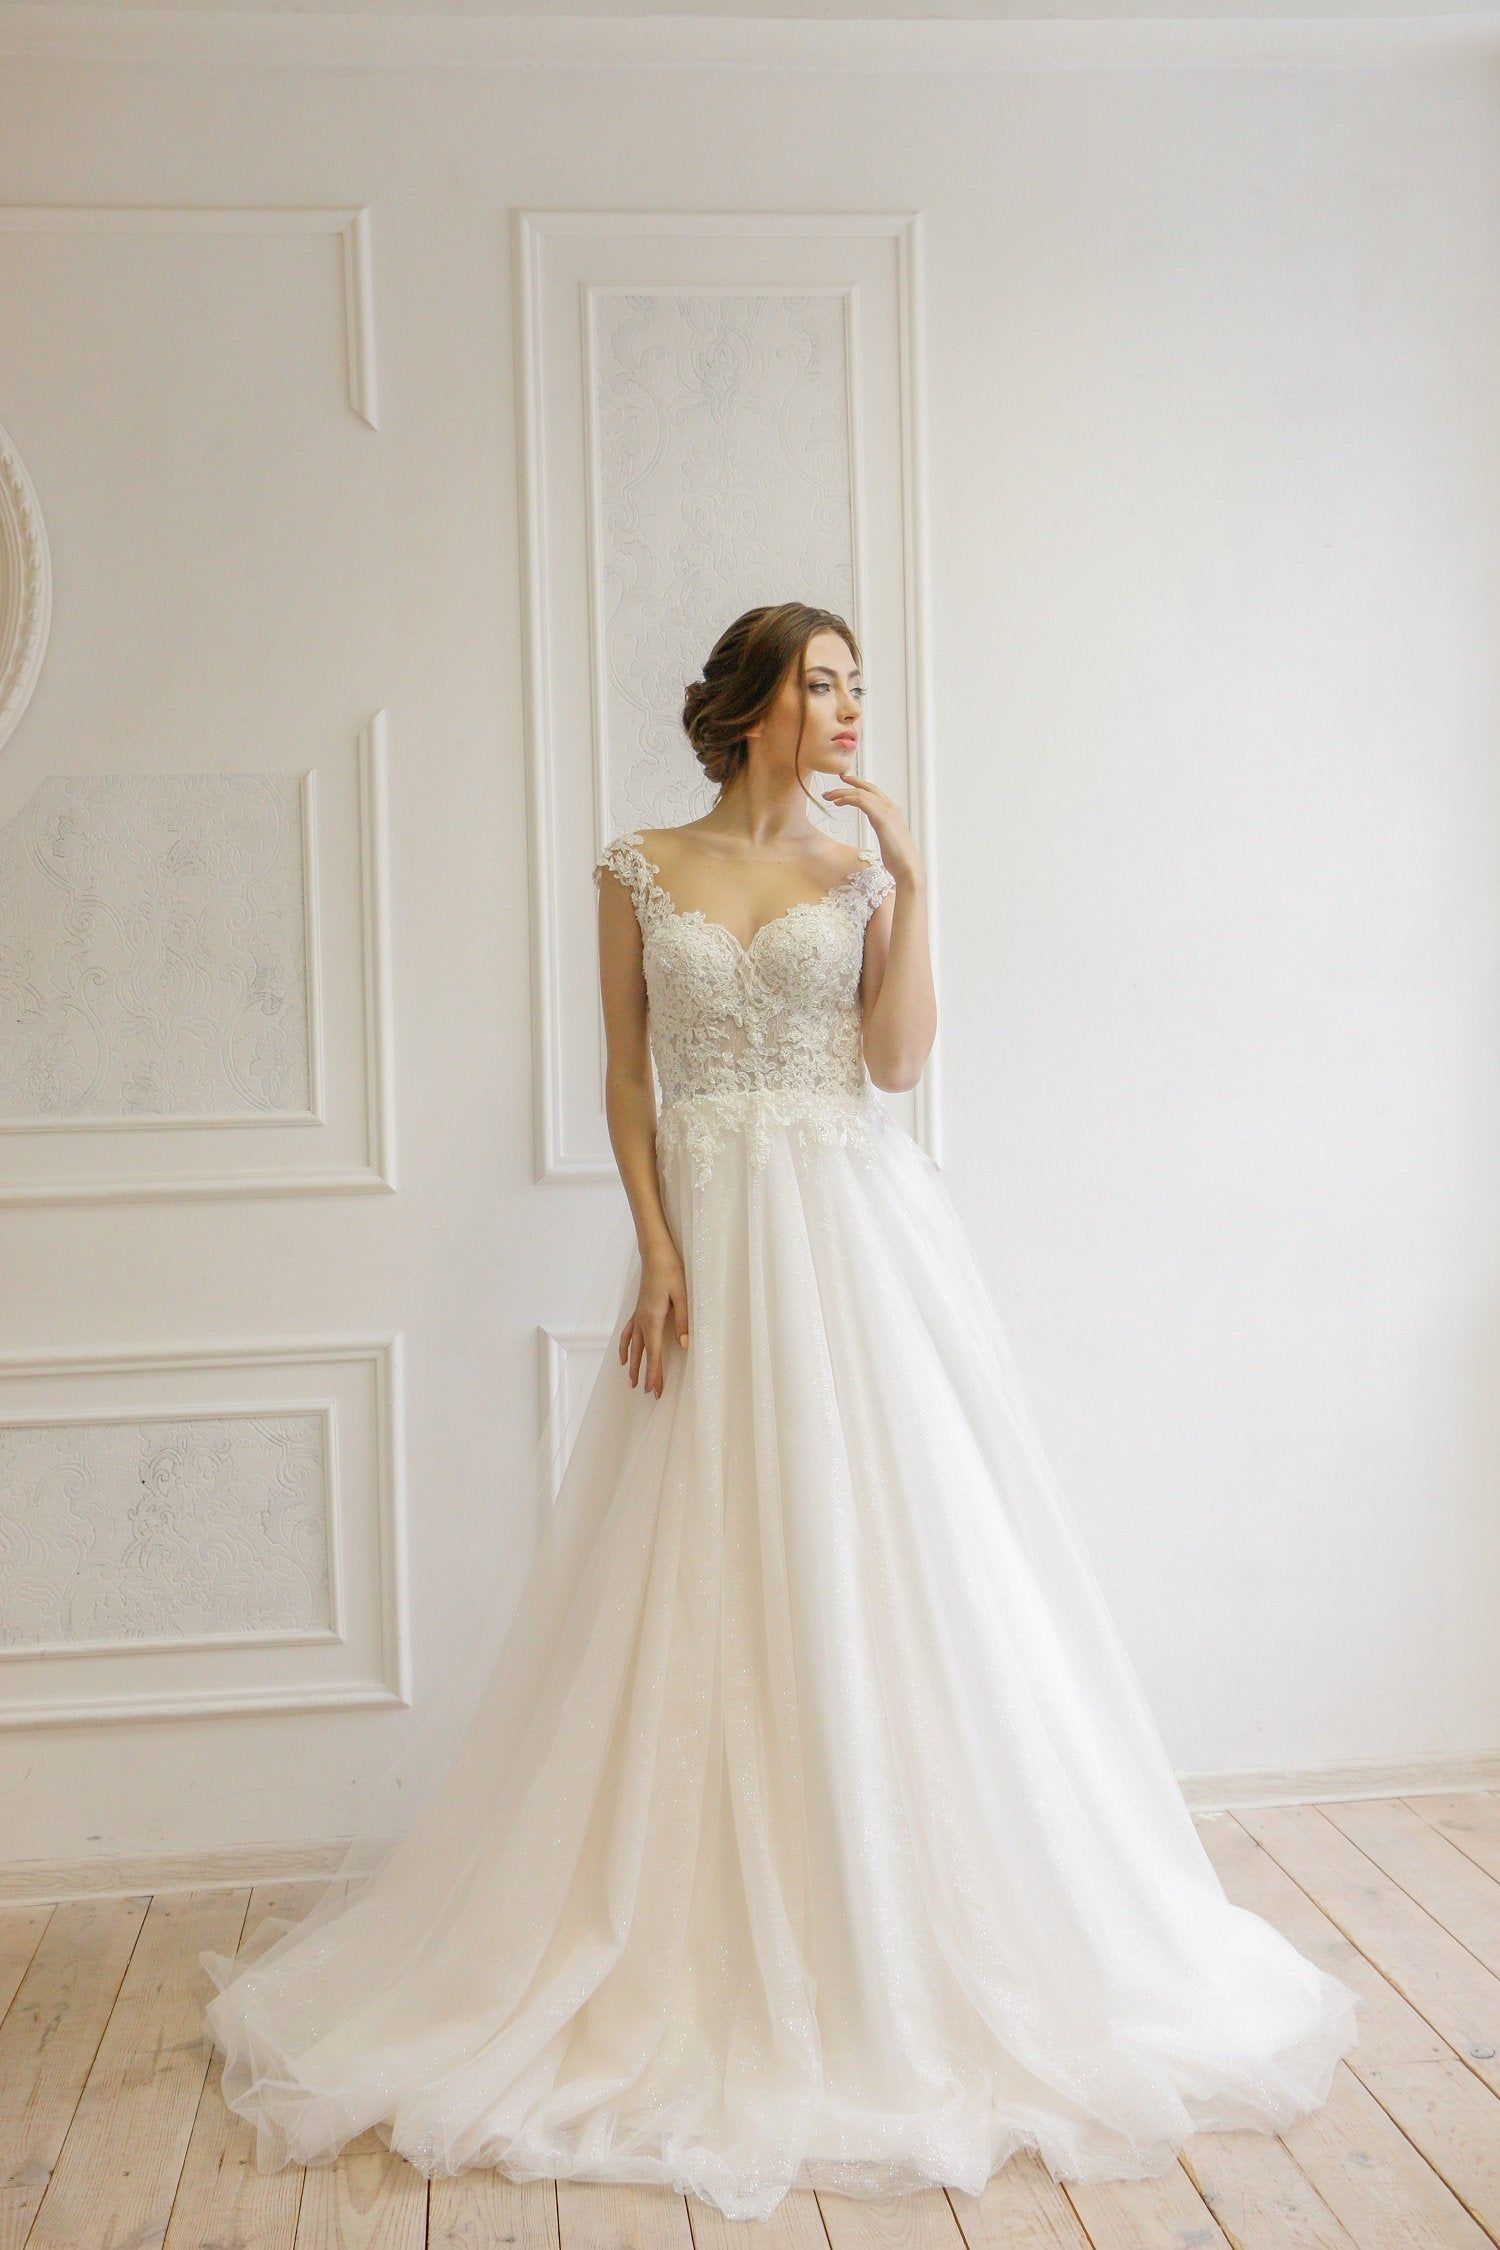 15 Wedding Dresses Under 1000 Dollars Perfete In 2020 Wedding Dresses Lace Etsy Wedding Dress Wedding Dresses